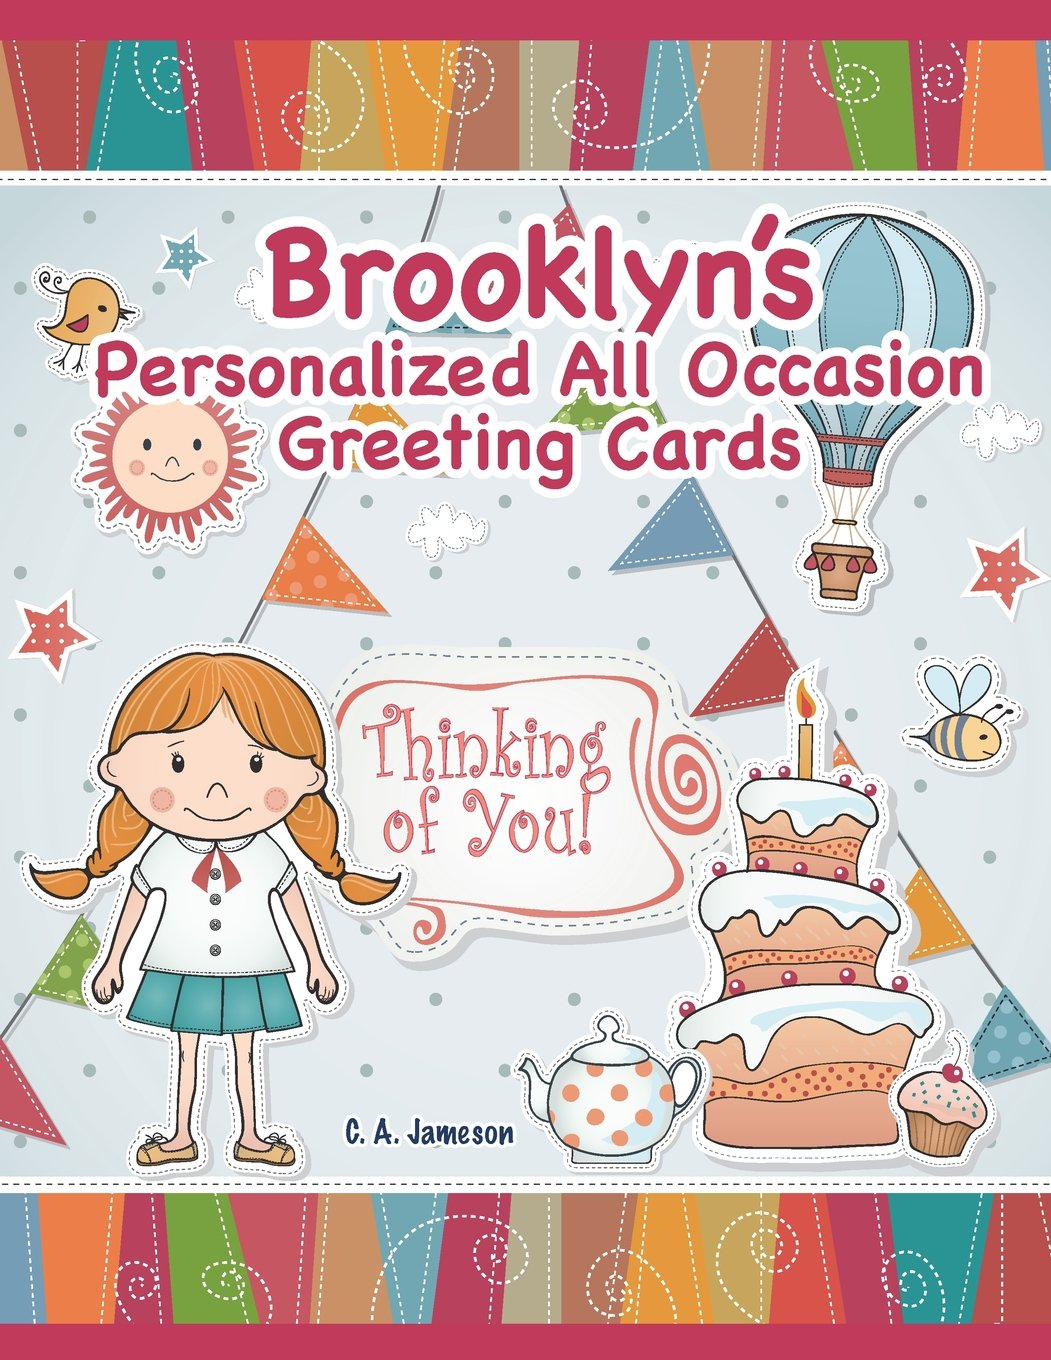 Brooklyn's Personalized All Occasion Greeting Cards (Personalized Greeting Cards) ebook